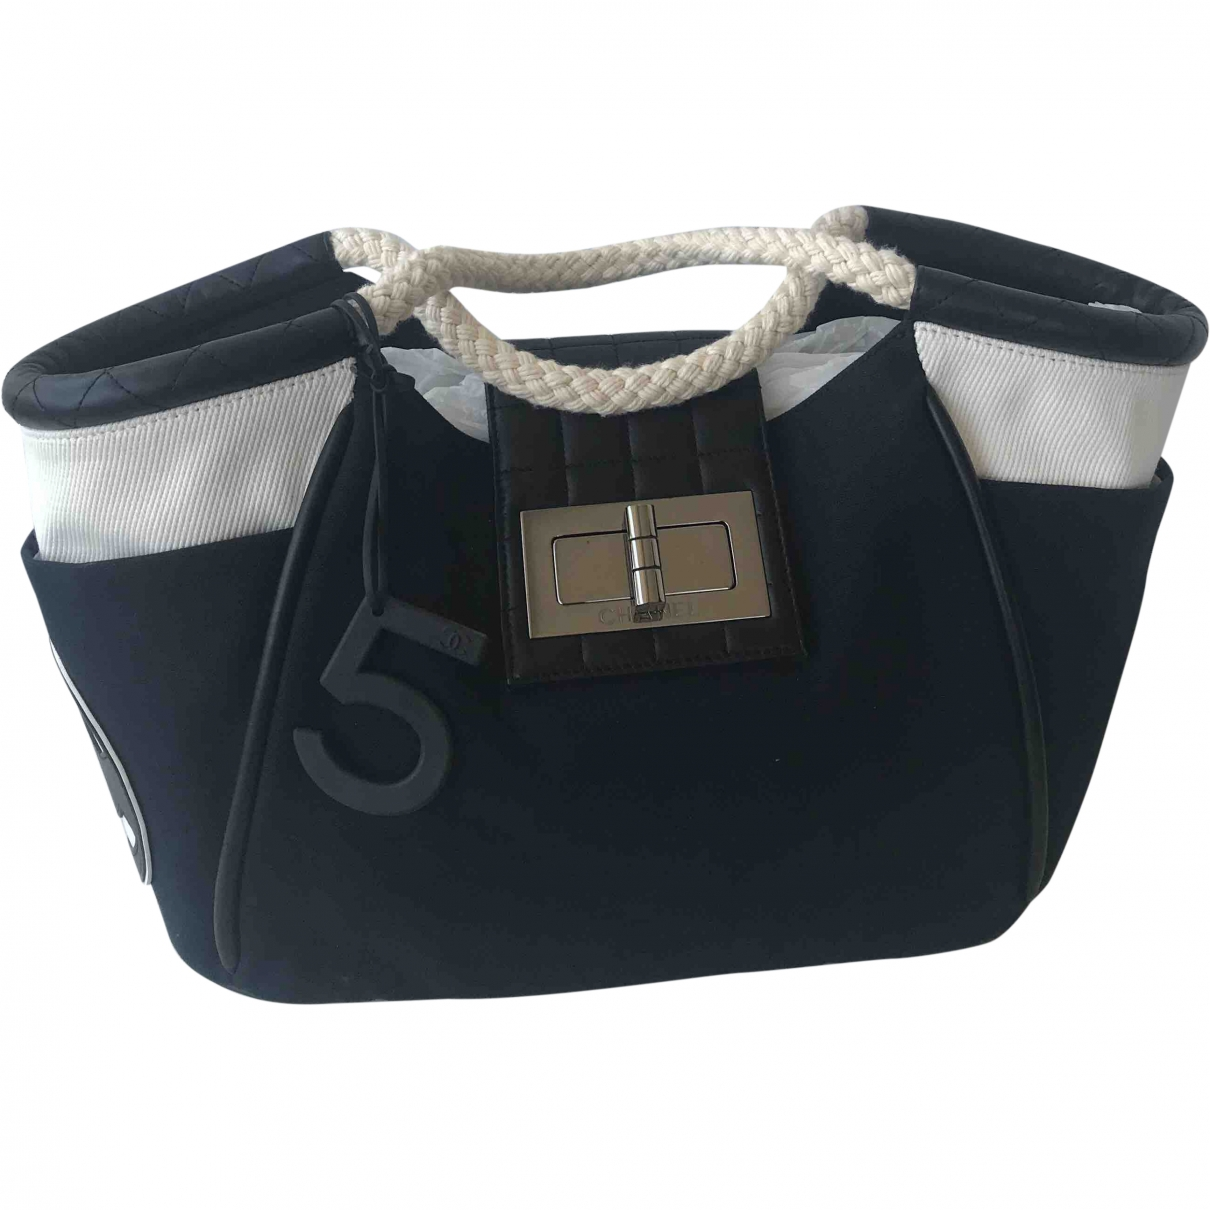 Chanel \N Black Cotton handbag for Women \N